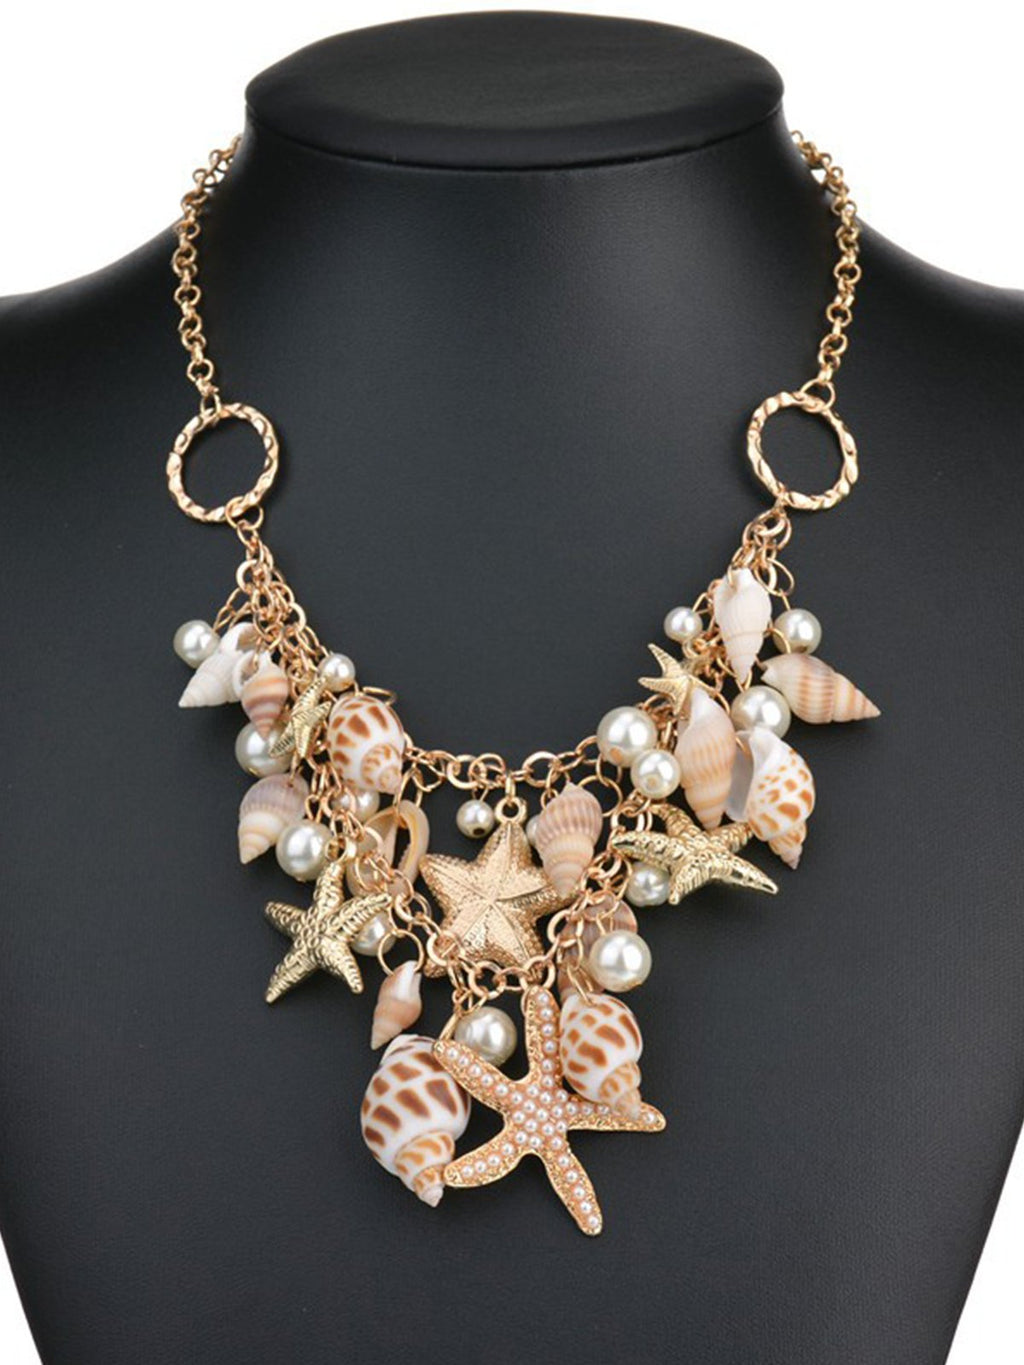 Beach Sparkling Starfish Shell Necklace Or Bracelet